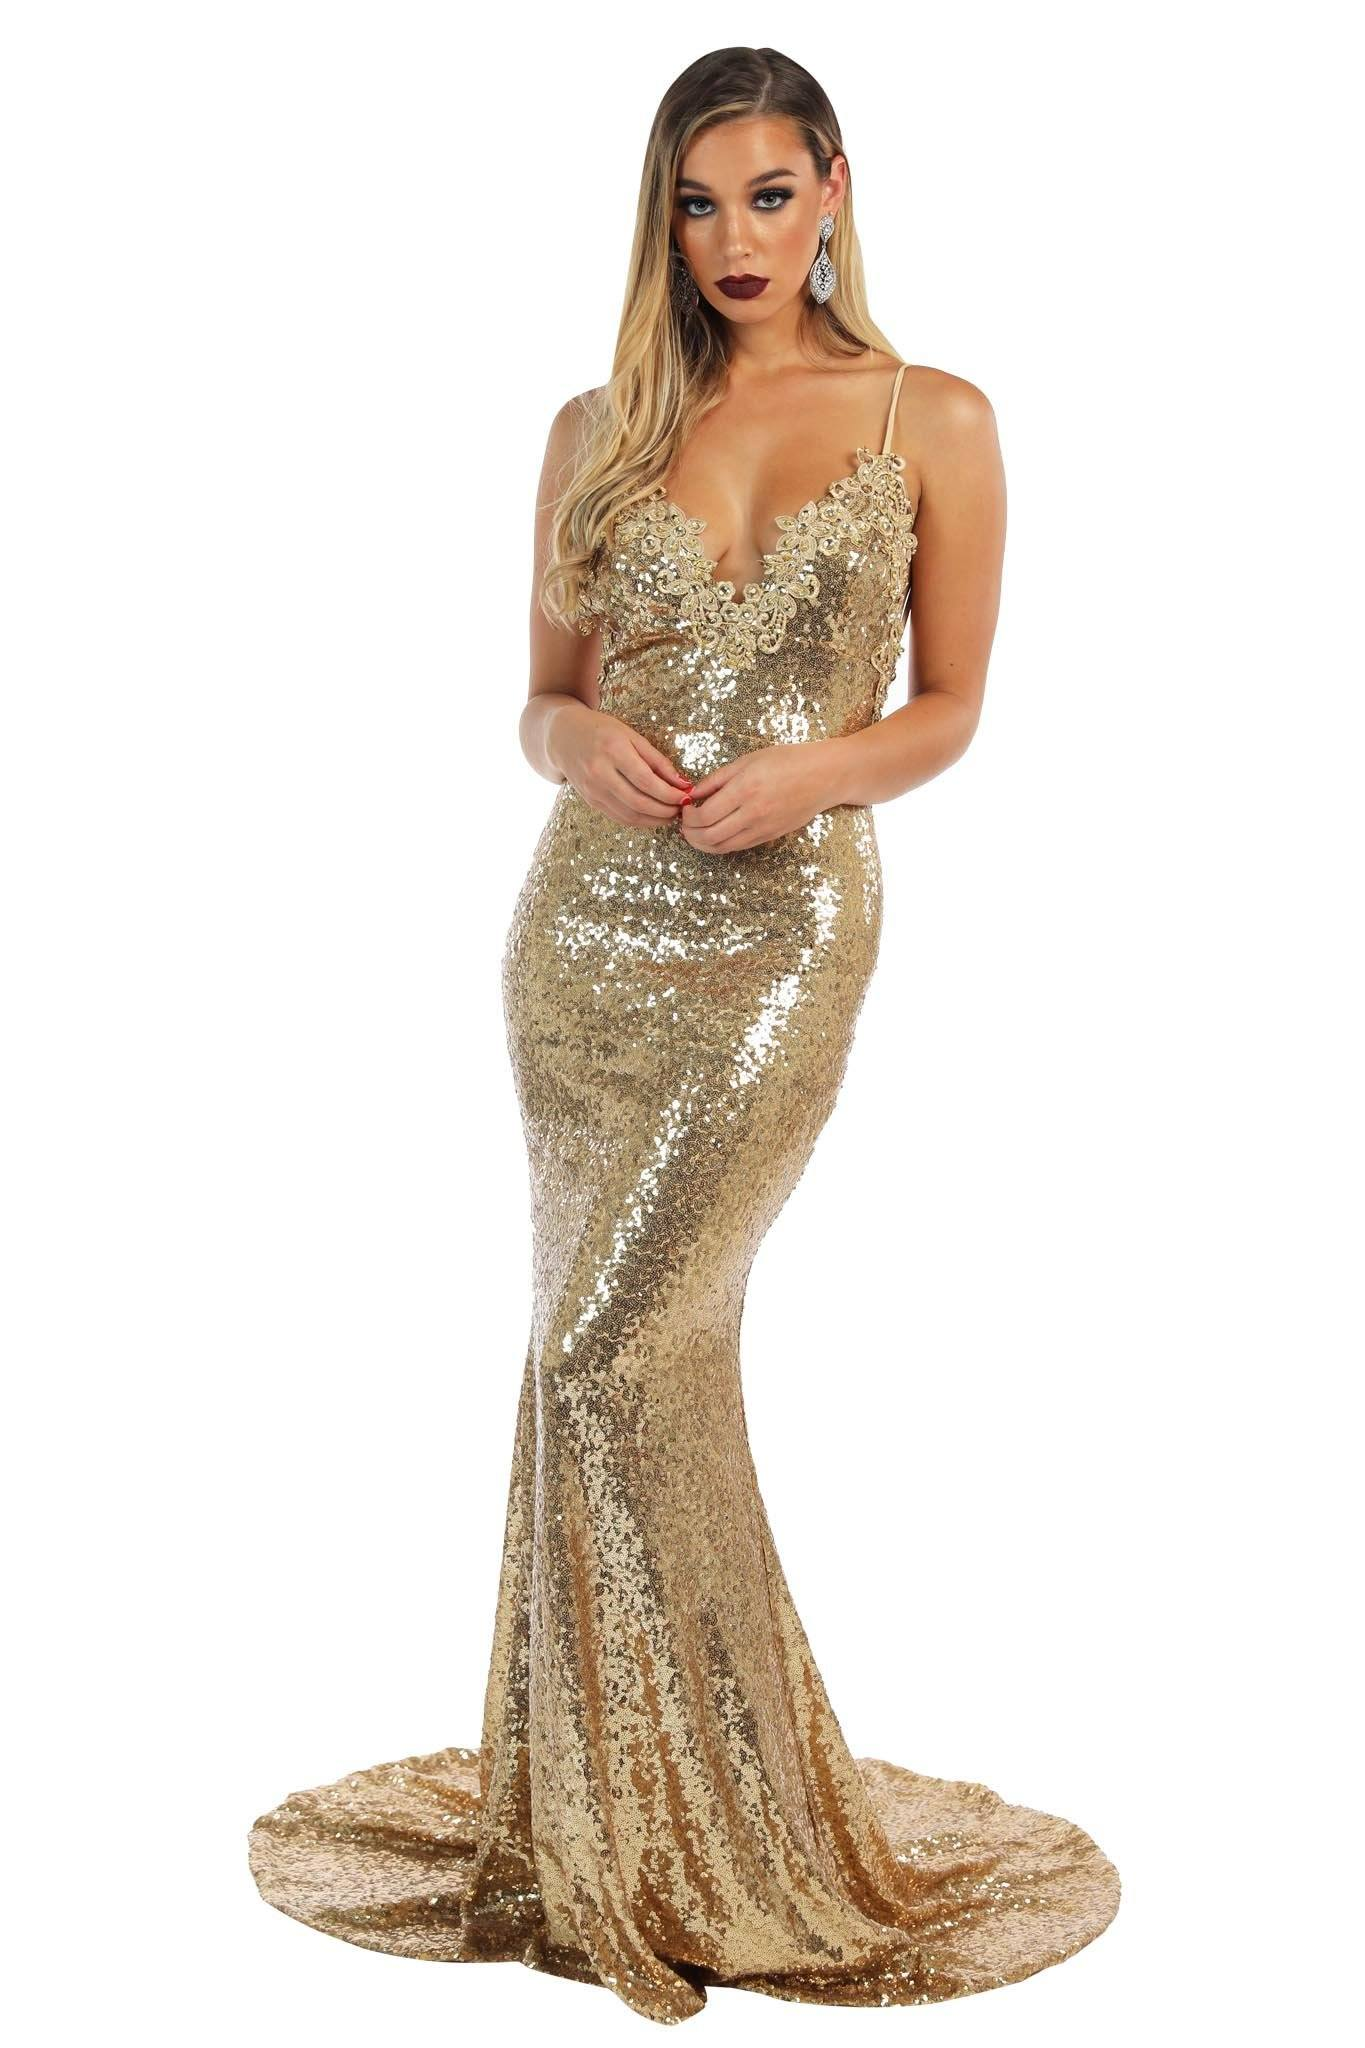 Gold sleeveless fitted sequin evening long gown featuring V neckline with beaded lace detailing, thin shoulder straps, V backless design and very long train